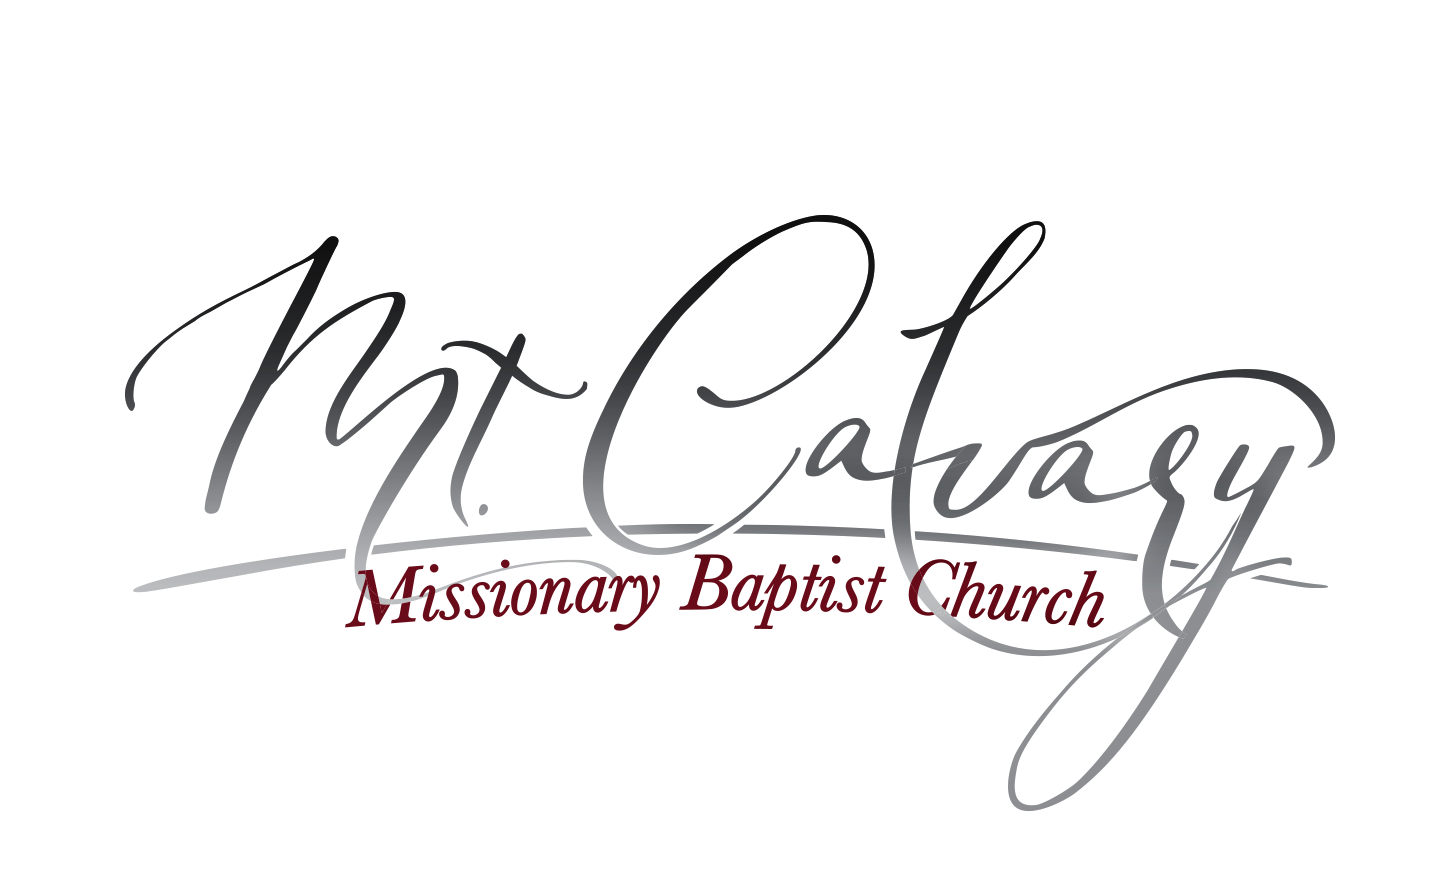 MT CALVARY MISSIONARY BAPTIST CHURCH